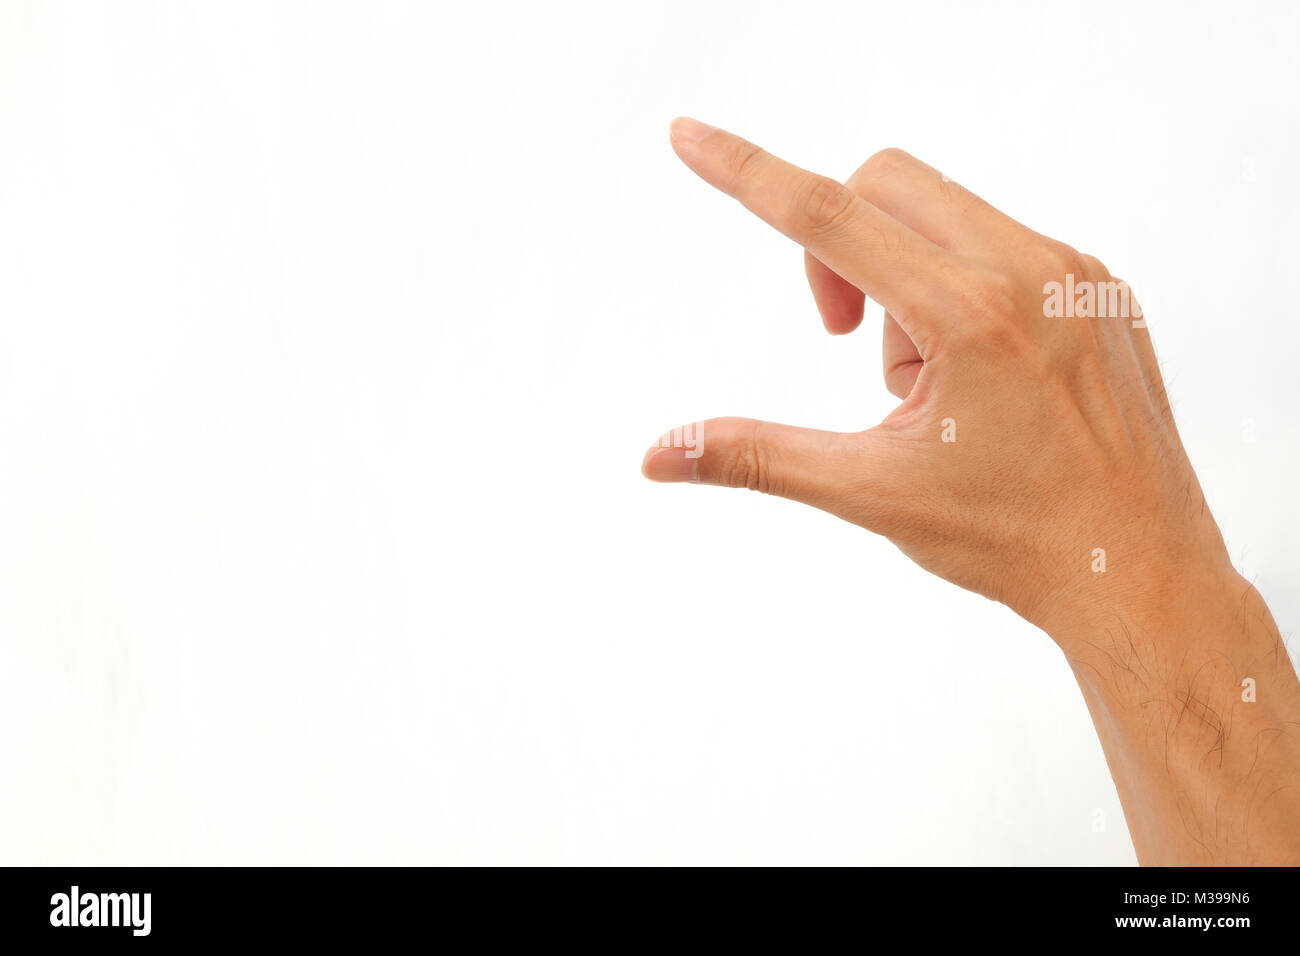 Hands to operate the touch panel - Stock Image